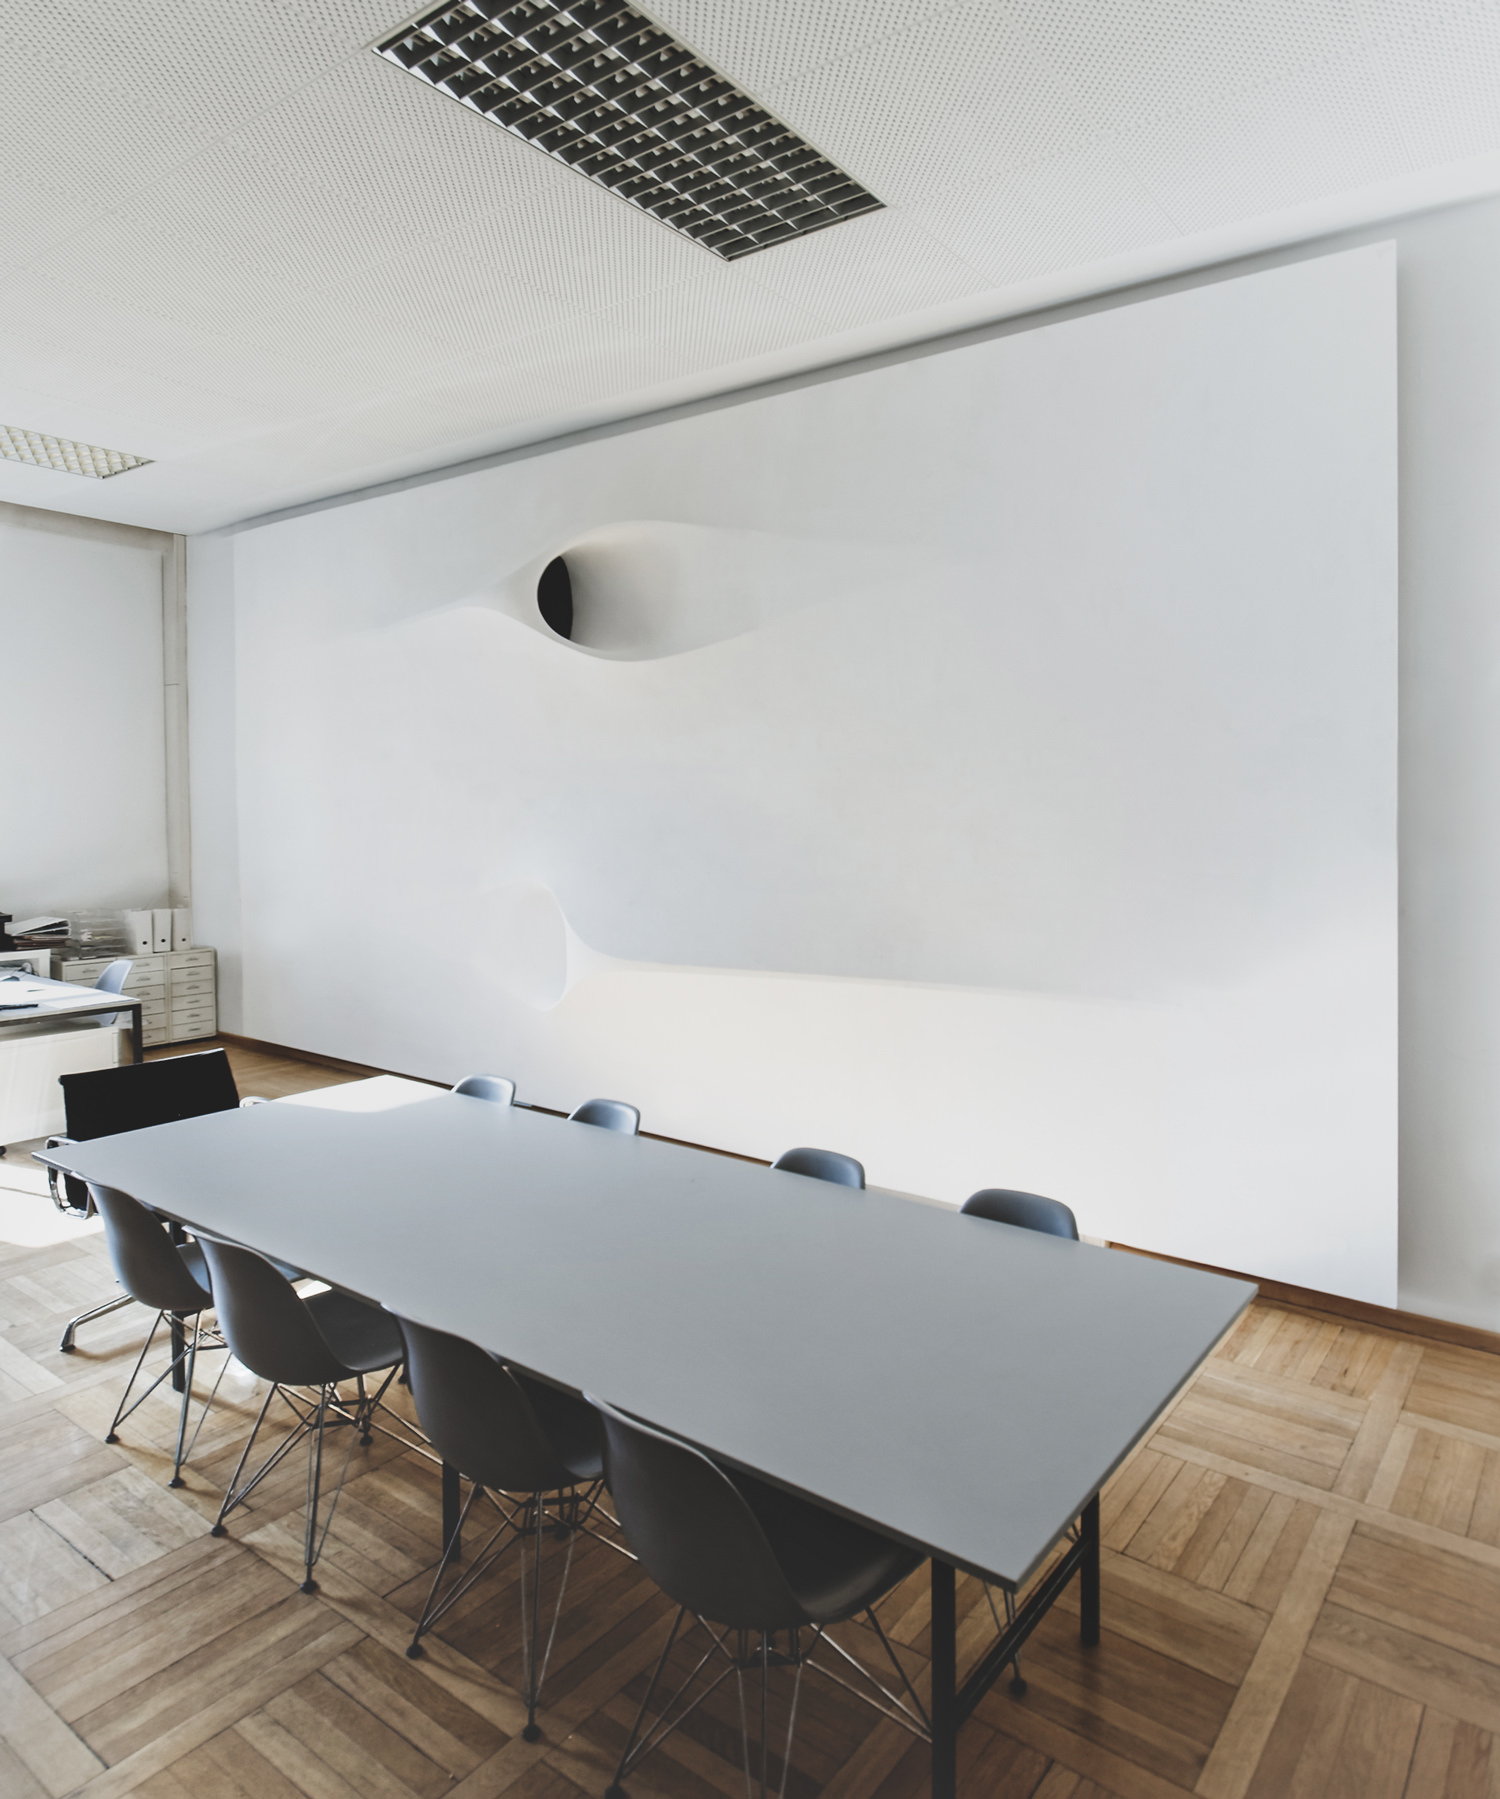 projector-ceiling-moh-architects-joerg-hugo-conferencetable2.jpg